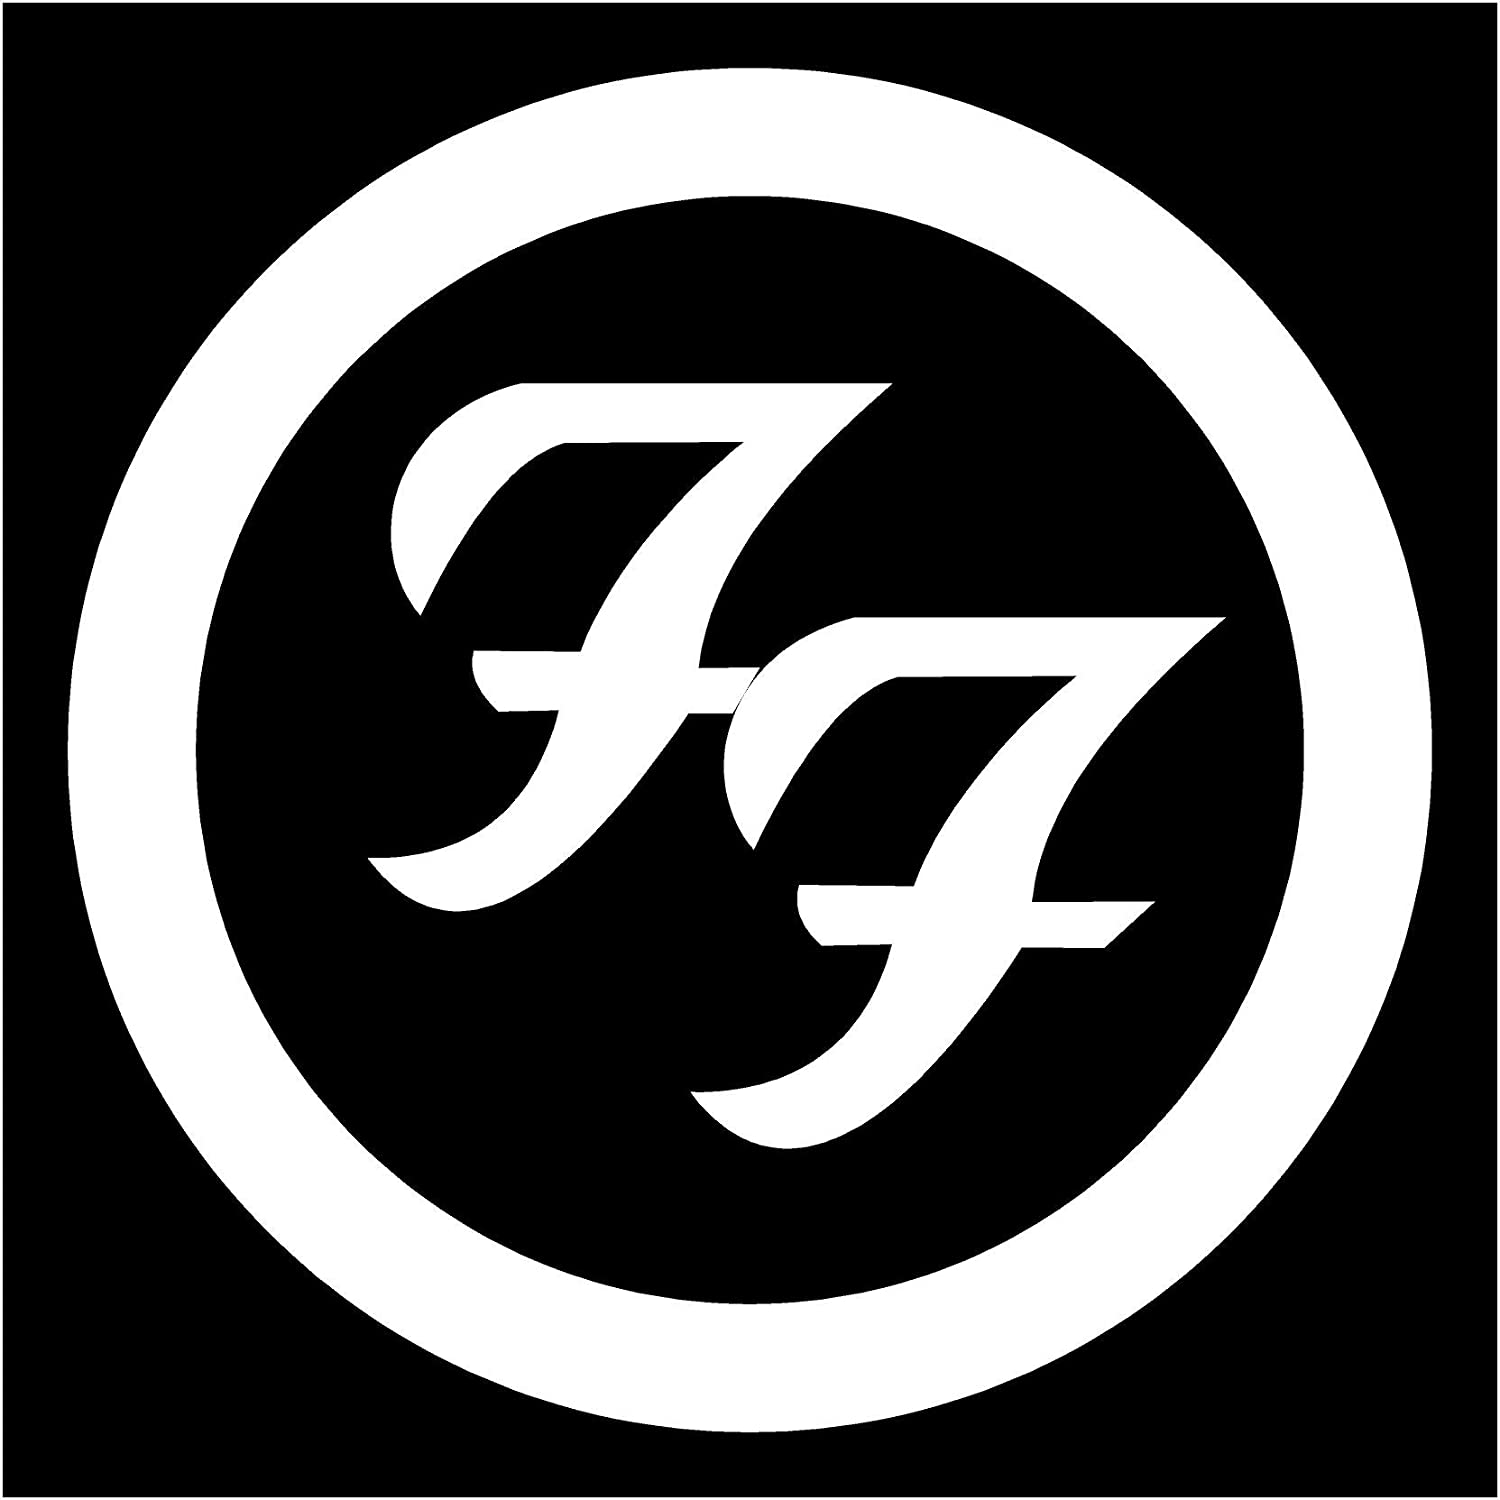 Amazon Foo Fighters Band White Logo Decal Sticker Automotive